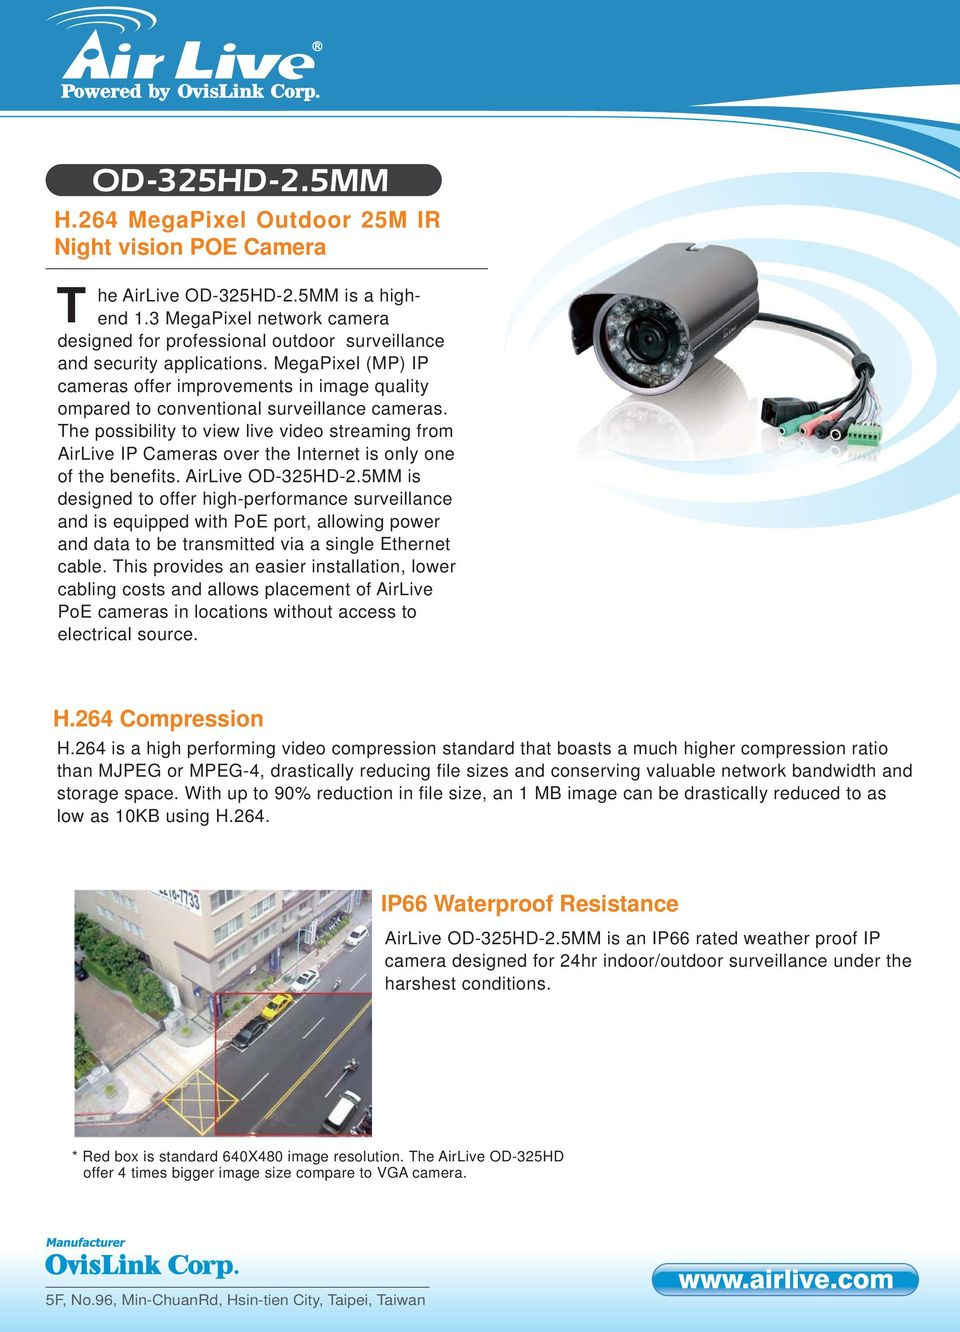 MegaPixel (MP) IP cameras offer improvements in image quality ompared to conventional surveillance cameras.